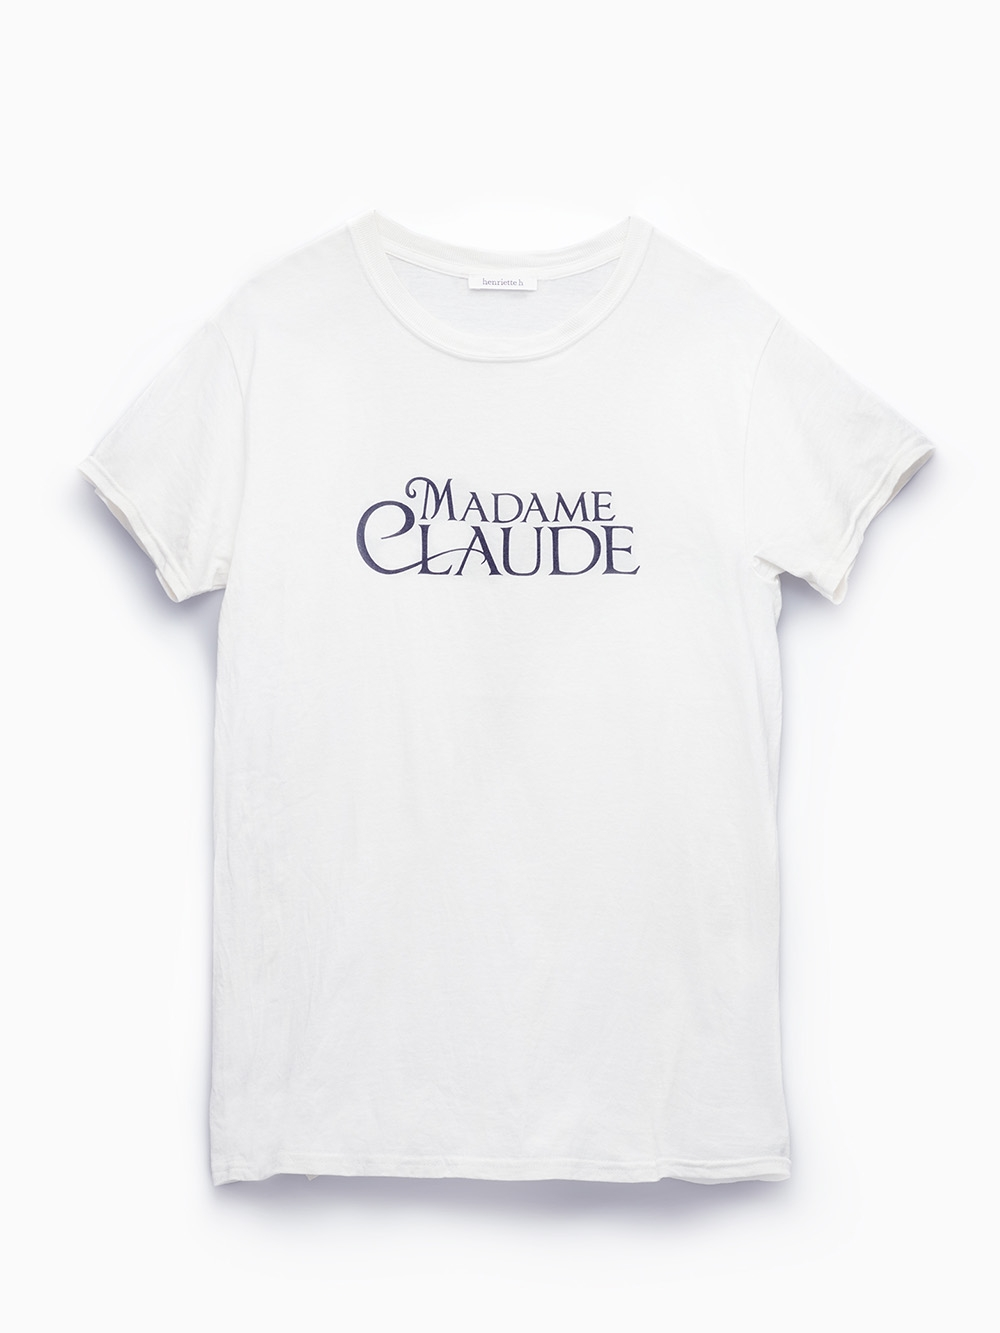 TEE SHIRT MADAME CLAUDE